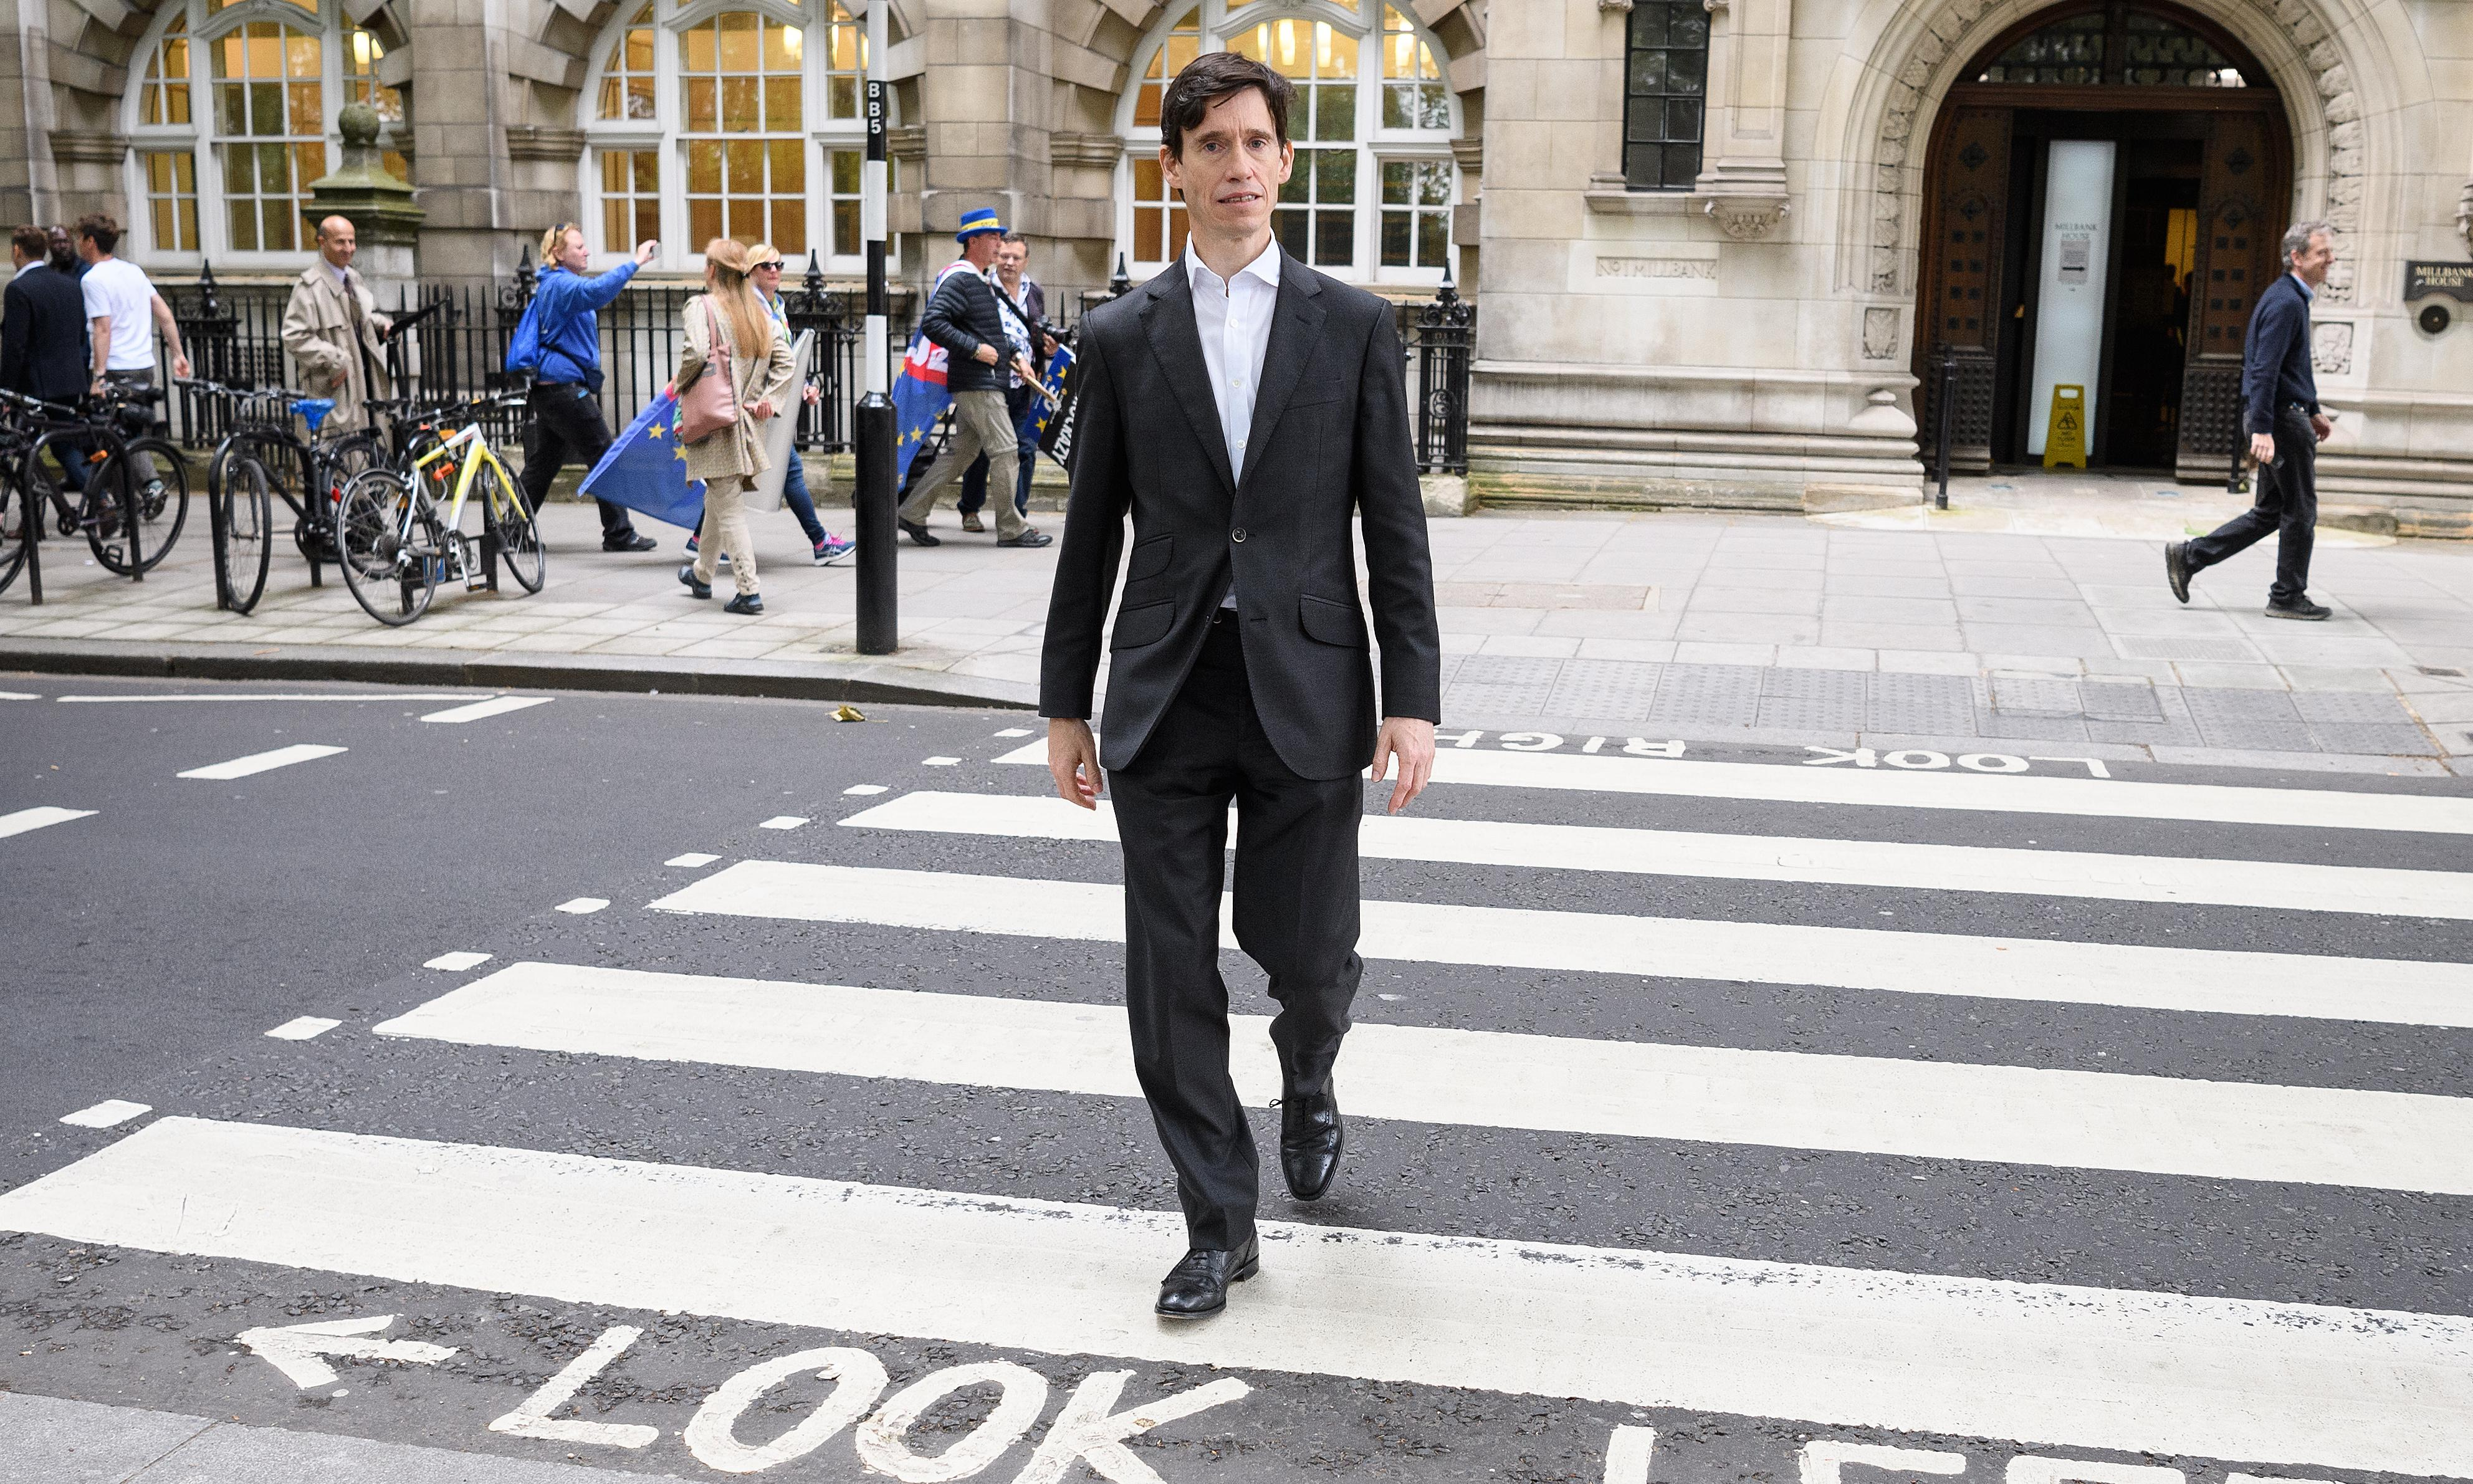 Rory Stewart's exit means the Tories have now given up on reality